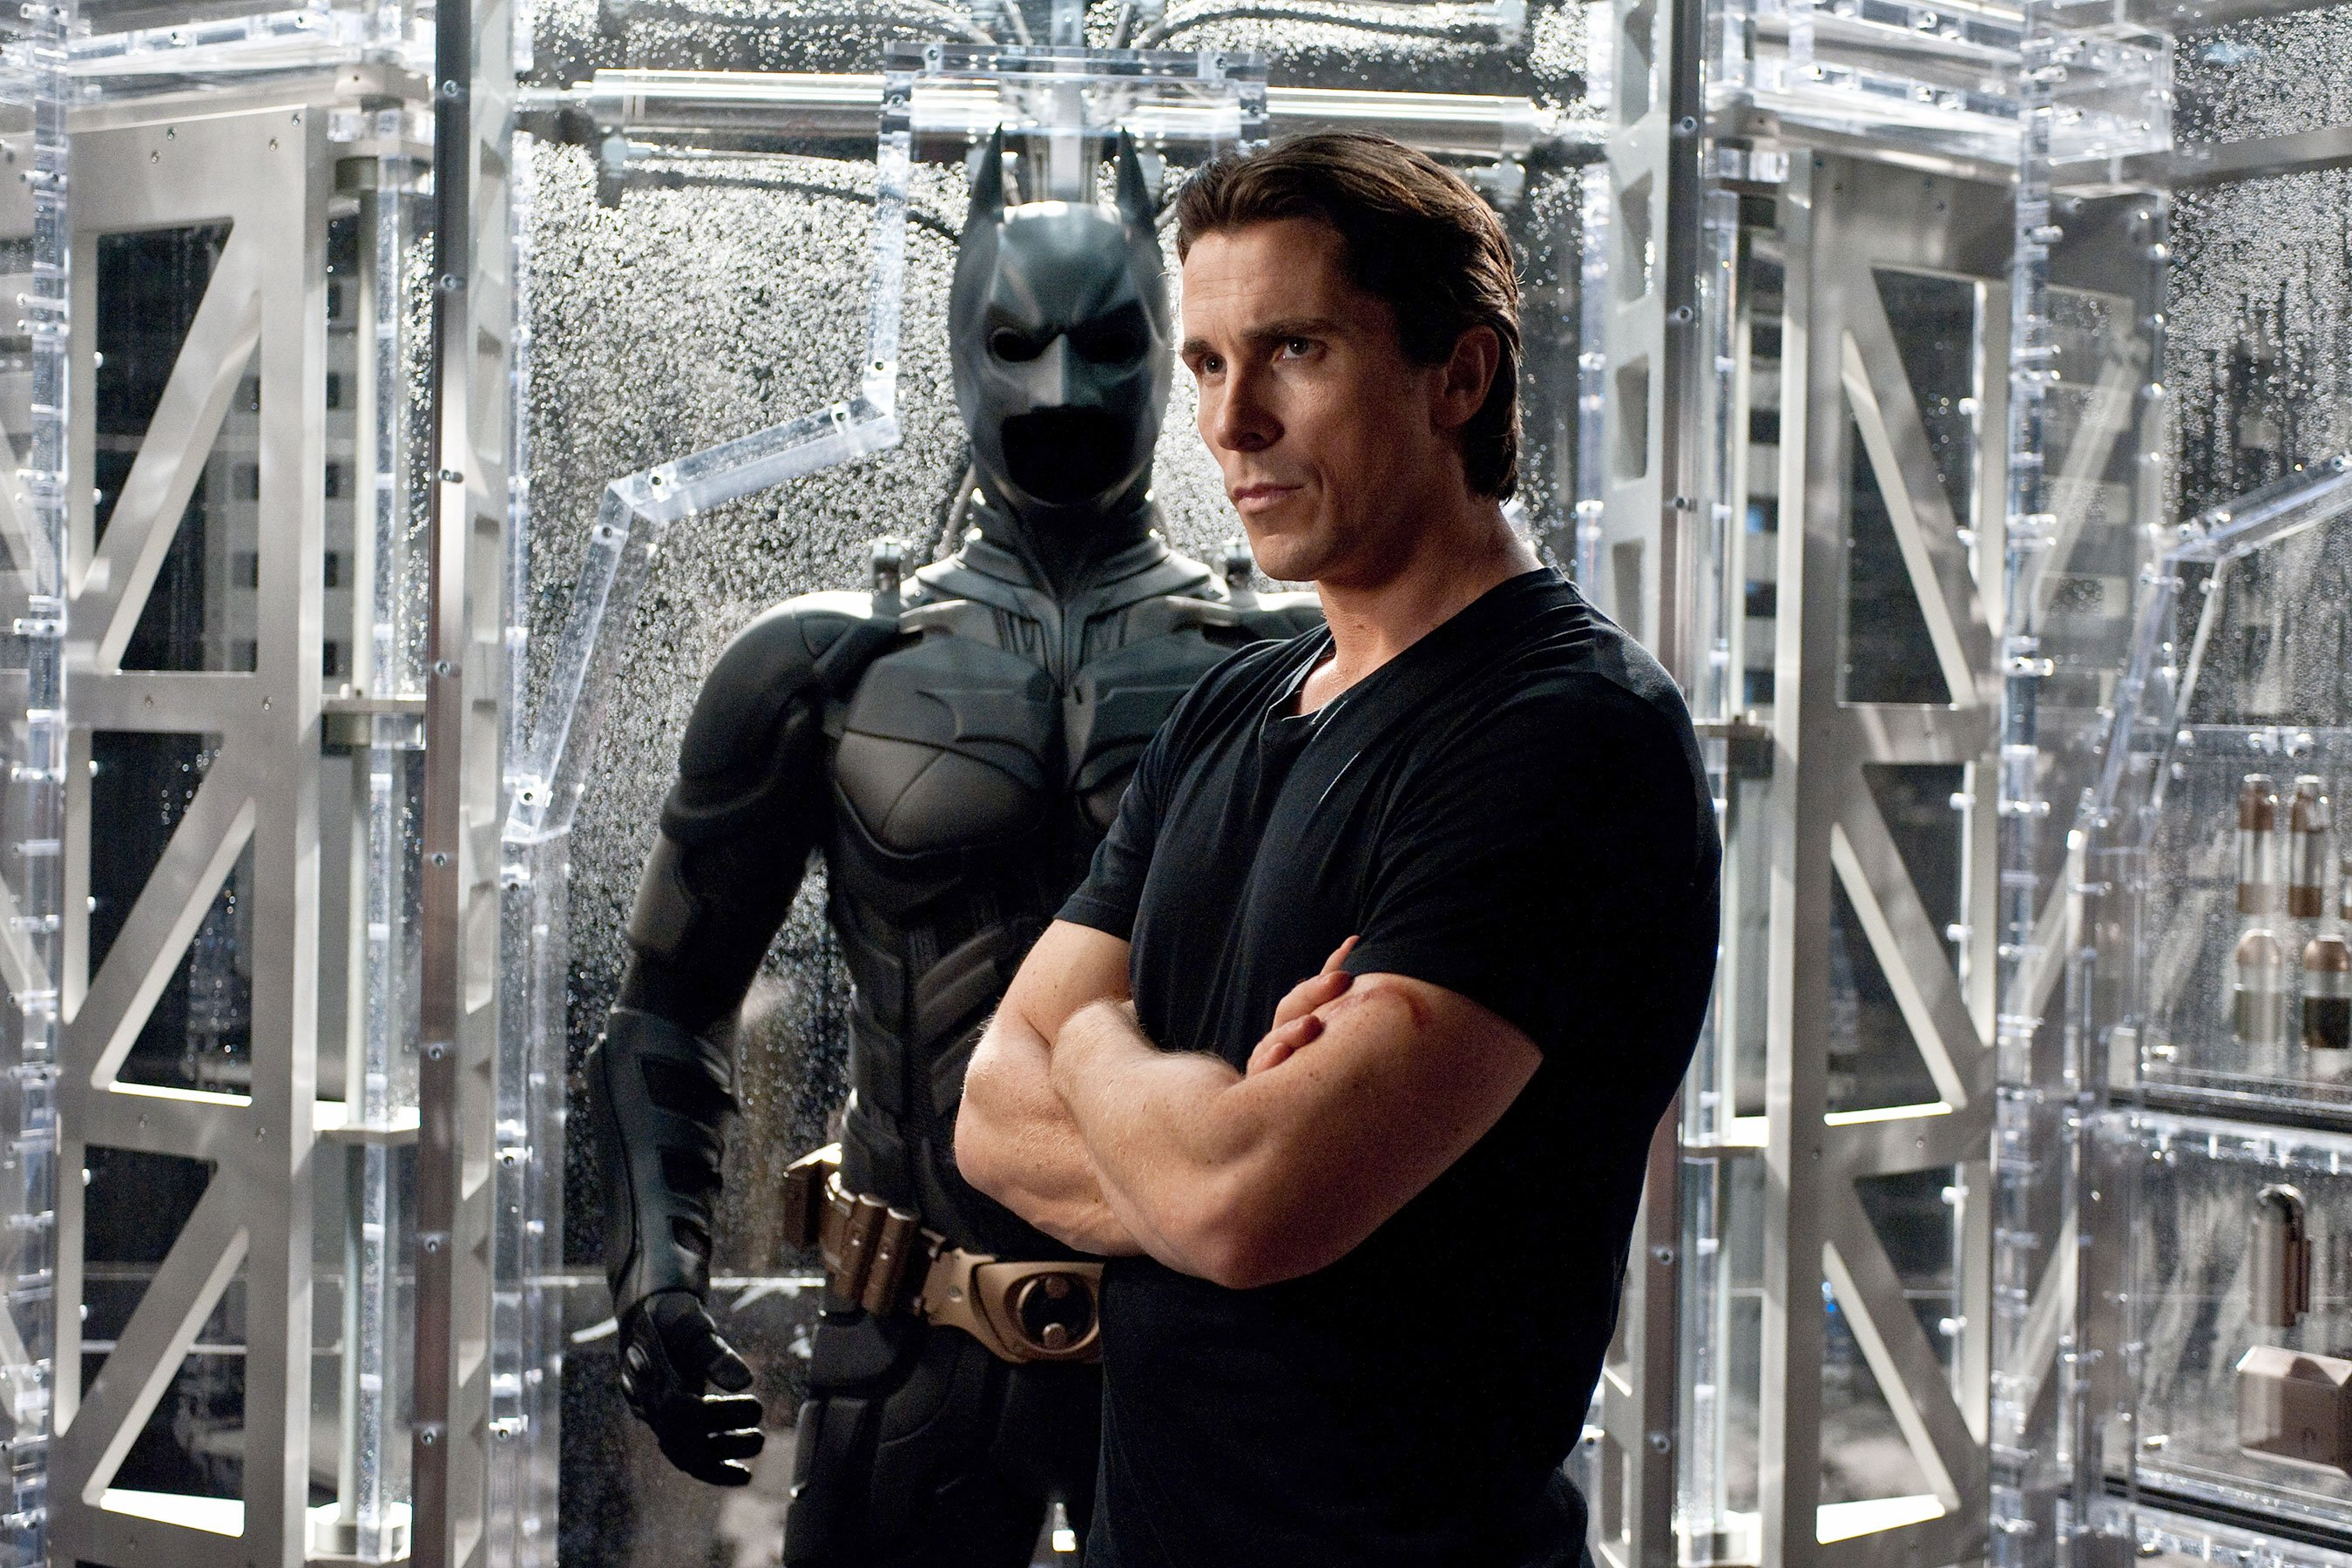 Christian Bale hasn't watched The Dark Knight Rises since Aurora shooting